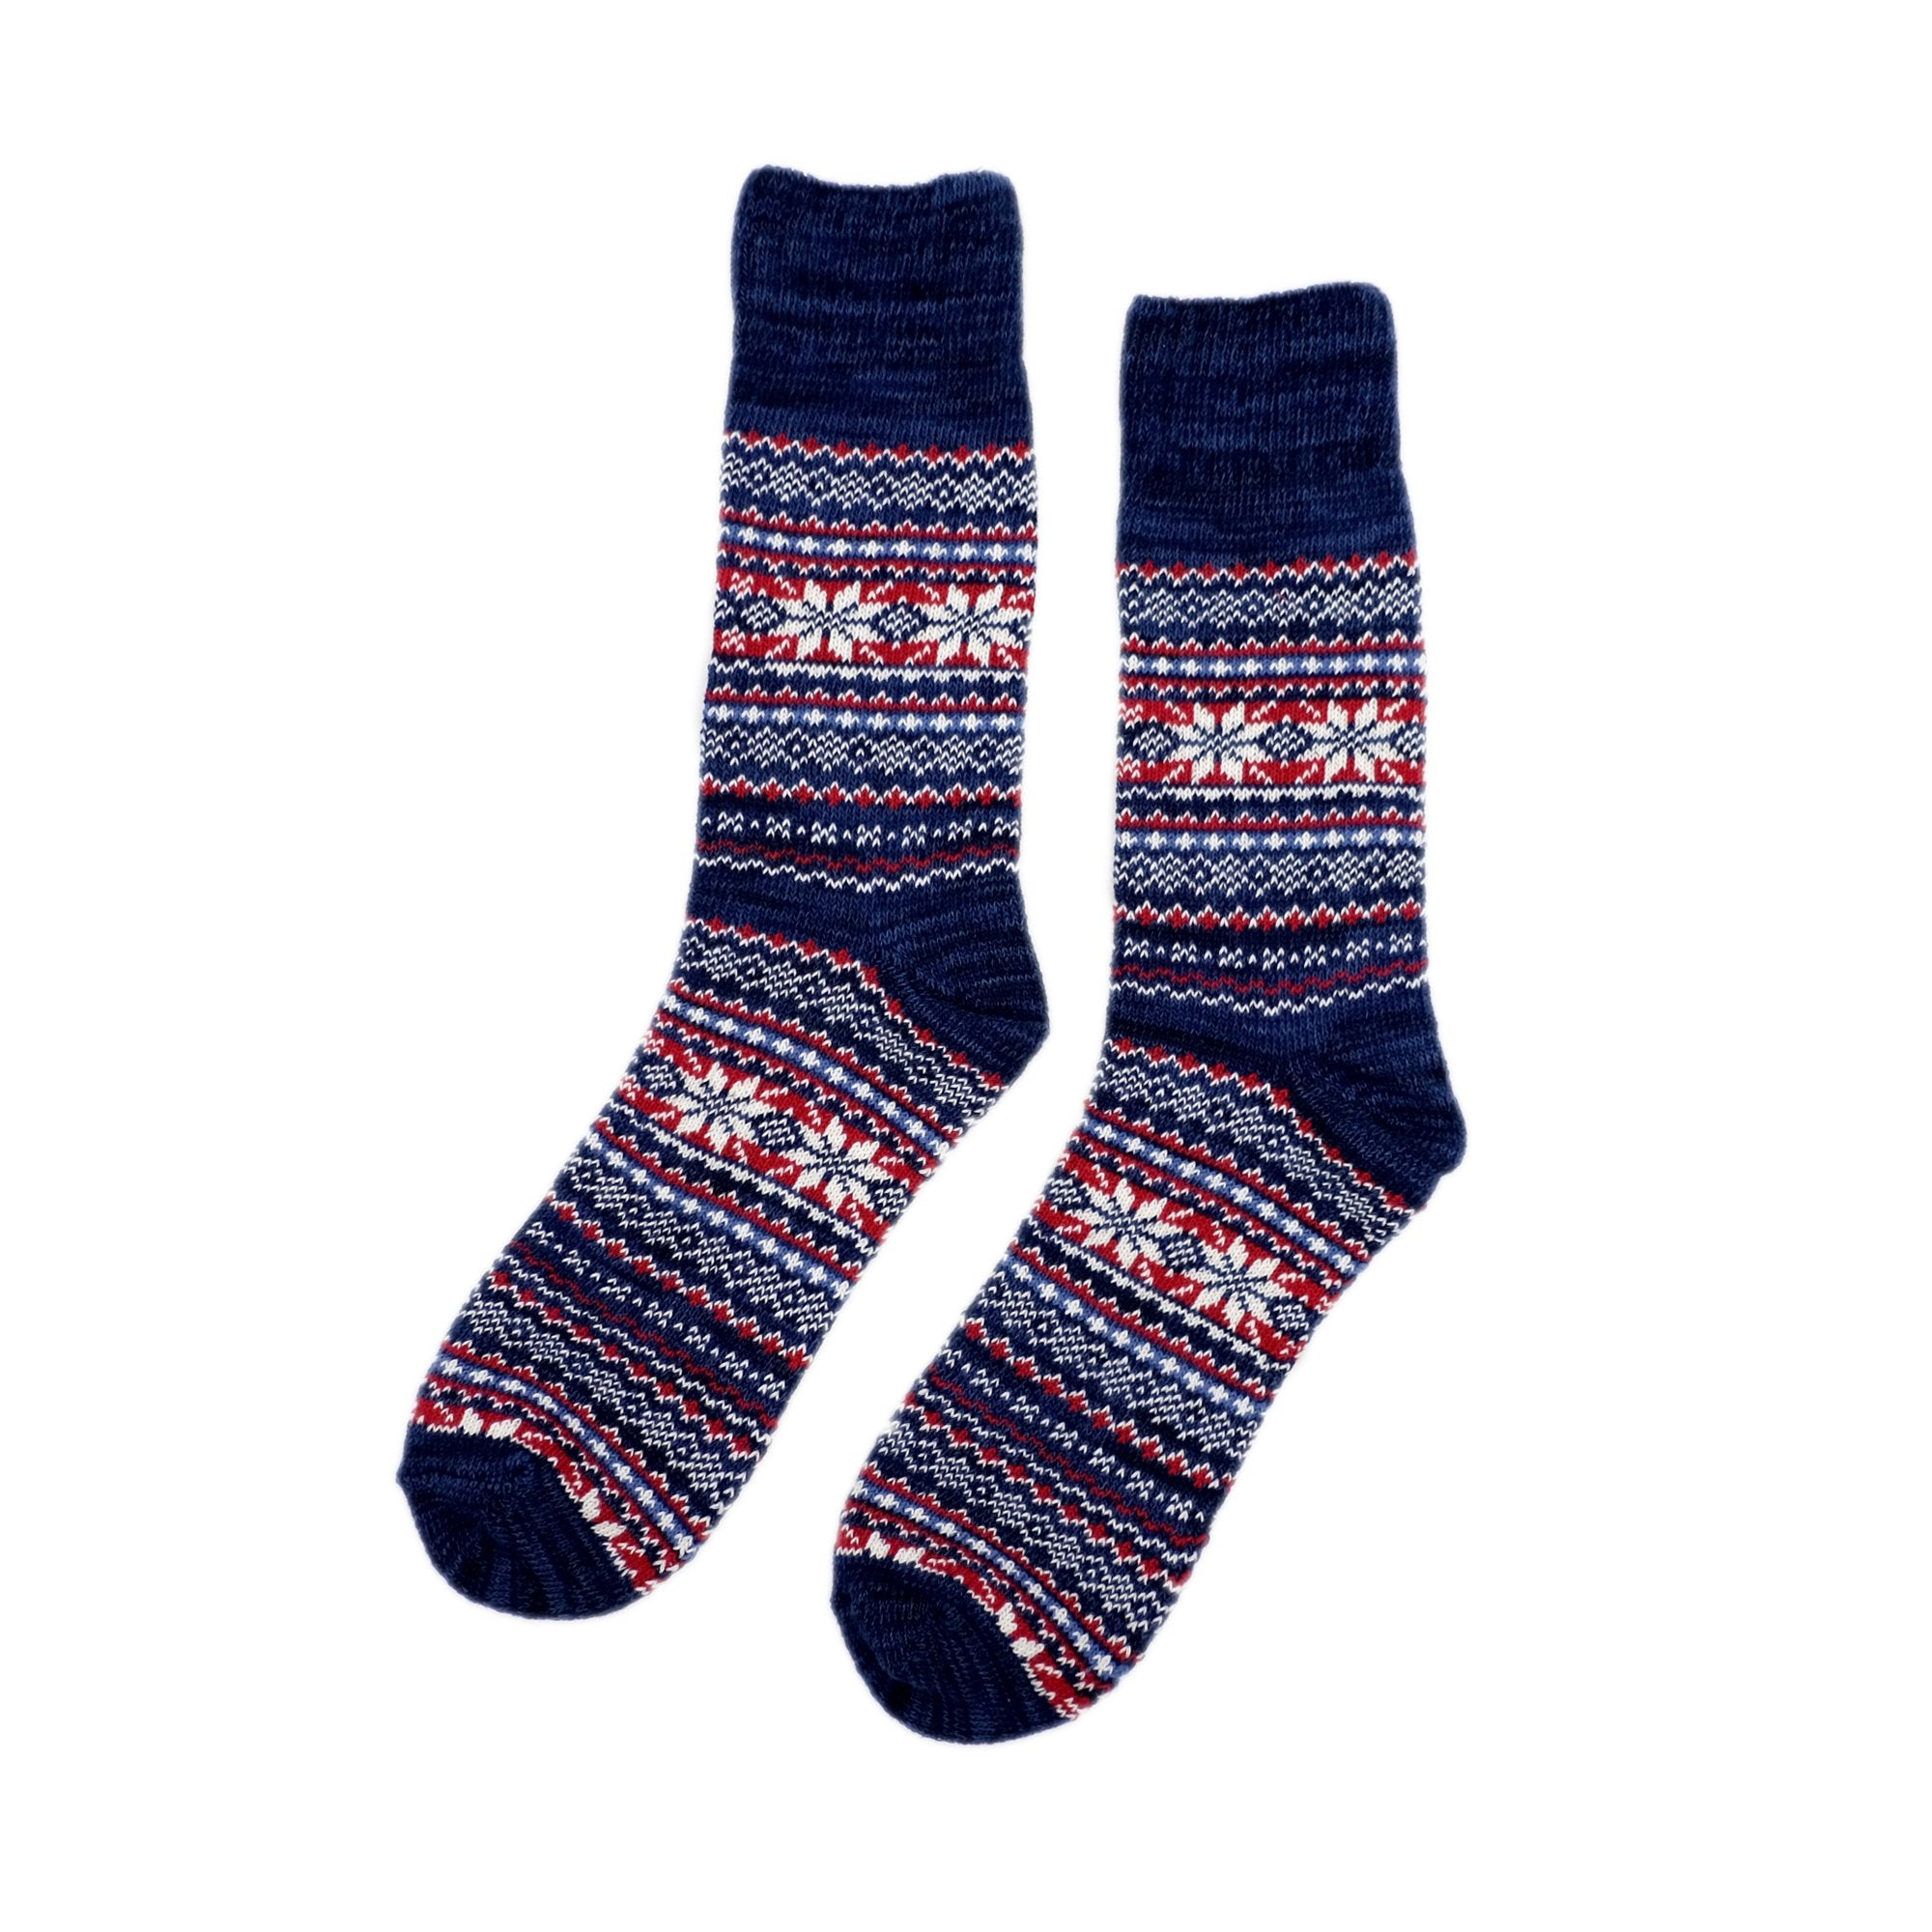 Nordic Socks - Navy